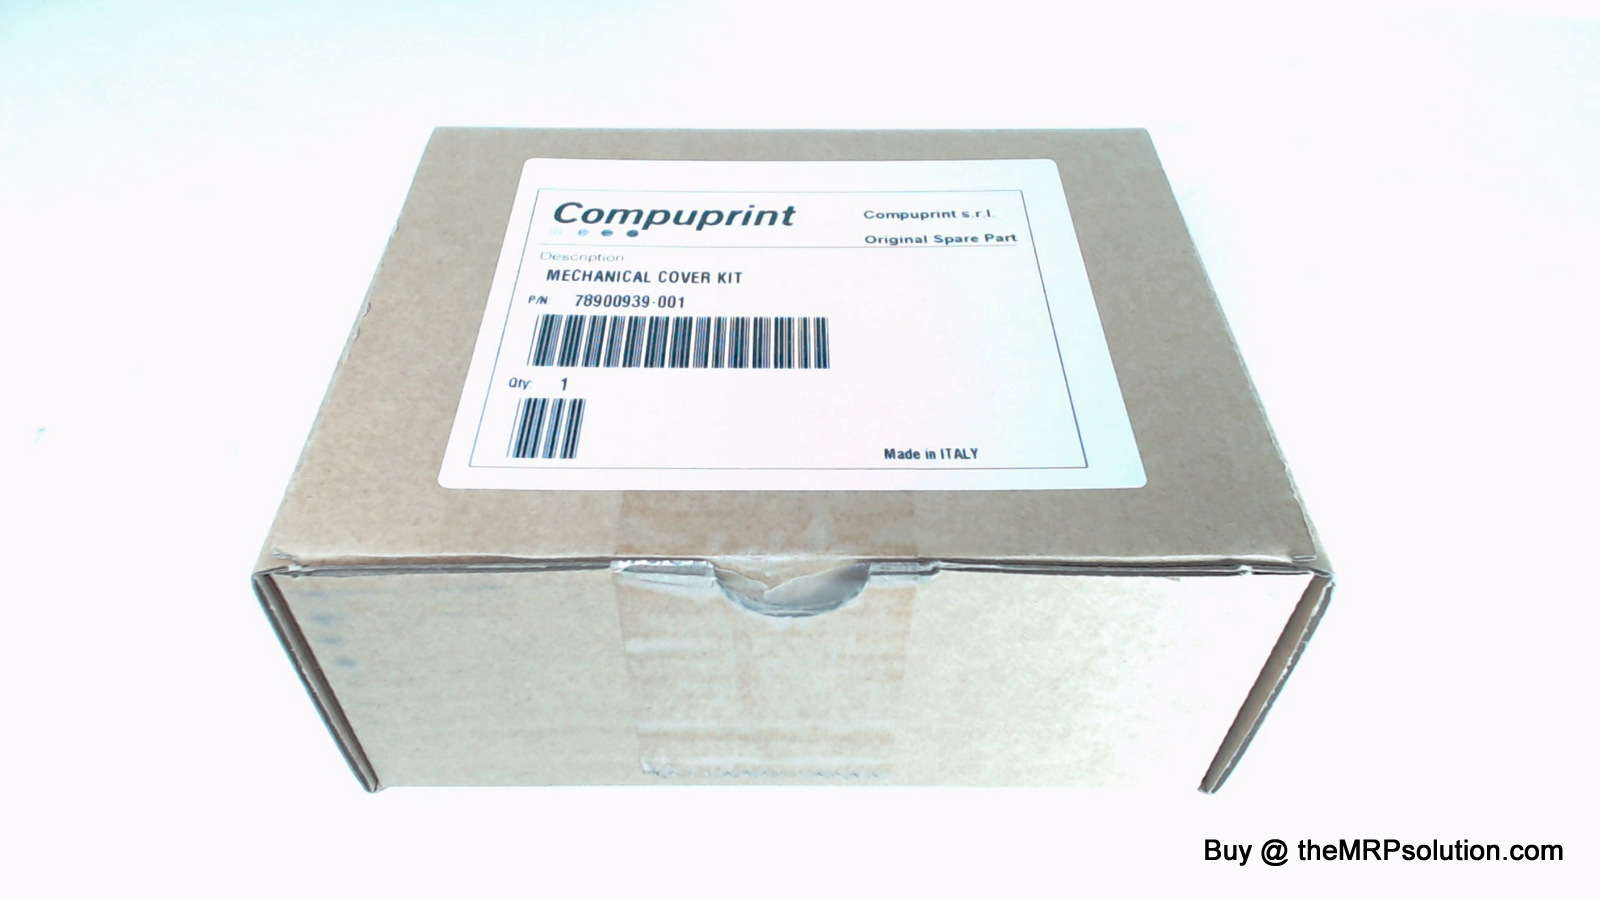 COMPUPRINT 78900939-001 MECHANICAL COVER KIT Refurbished